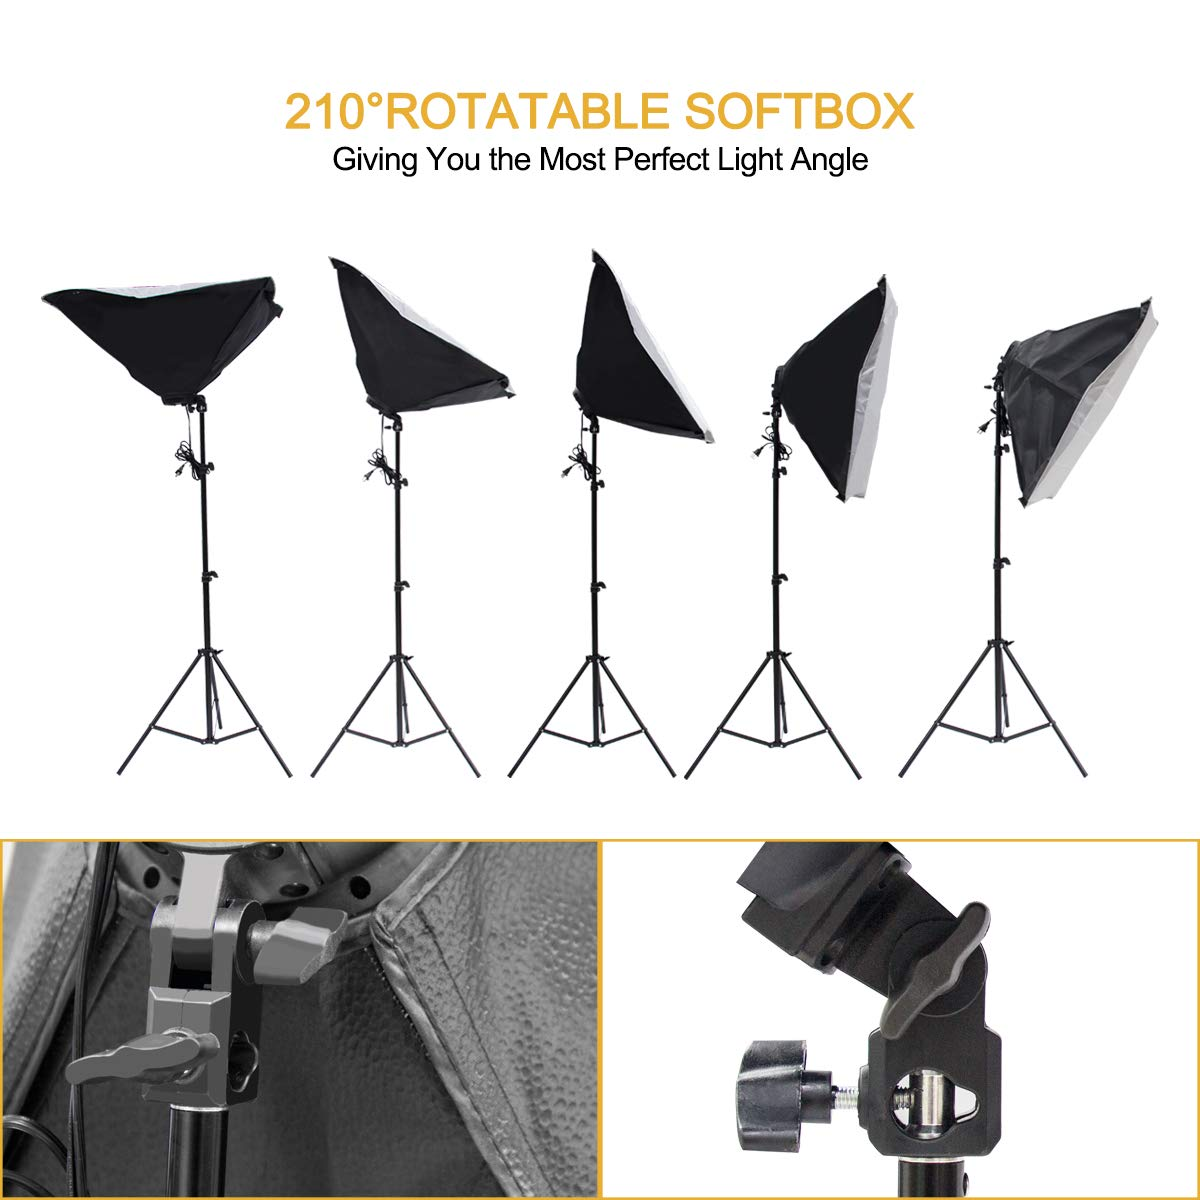 Wisamic Photography Video Studio Lighting Kit, Background Support System 10ft x 6.6ft/2MX3M with 3 Color Backdrop, 3 Umbrella, 3 Softbox, Continuous Lighting Kit for Photo Video Shooting Photography by Wisamic (Image #5)